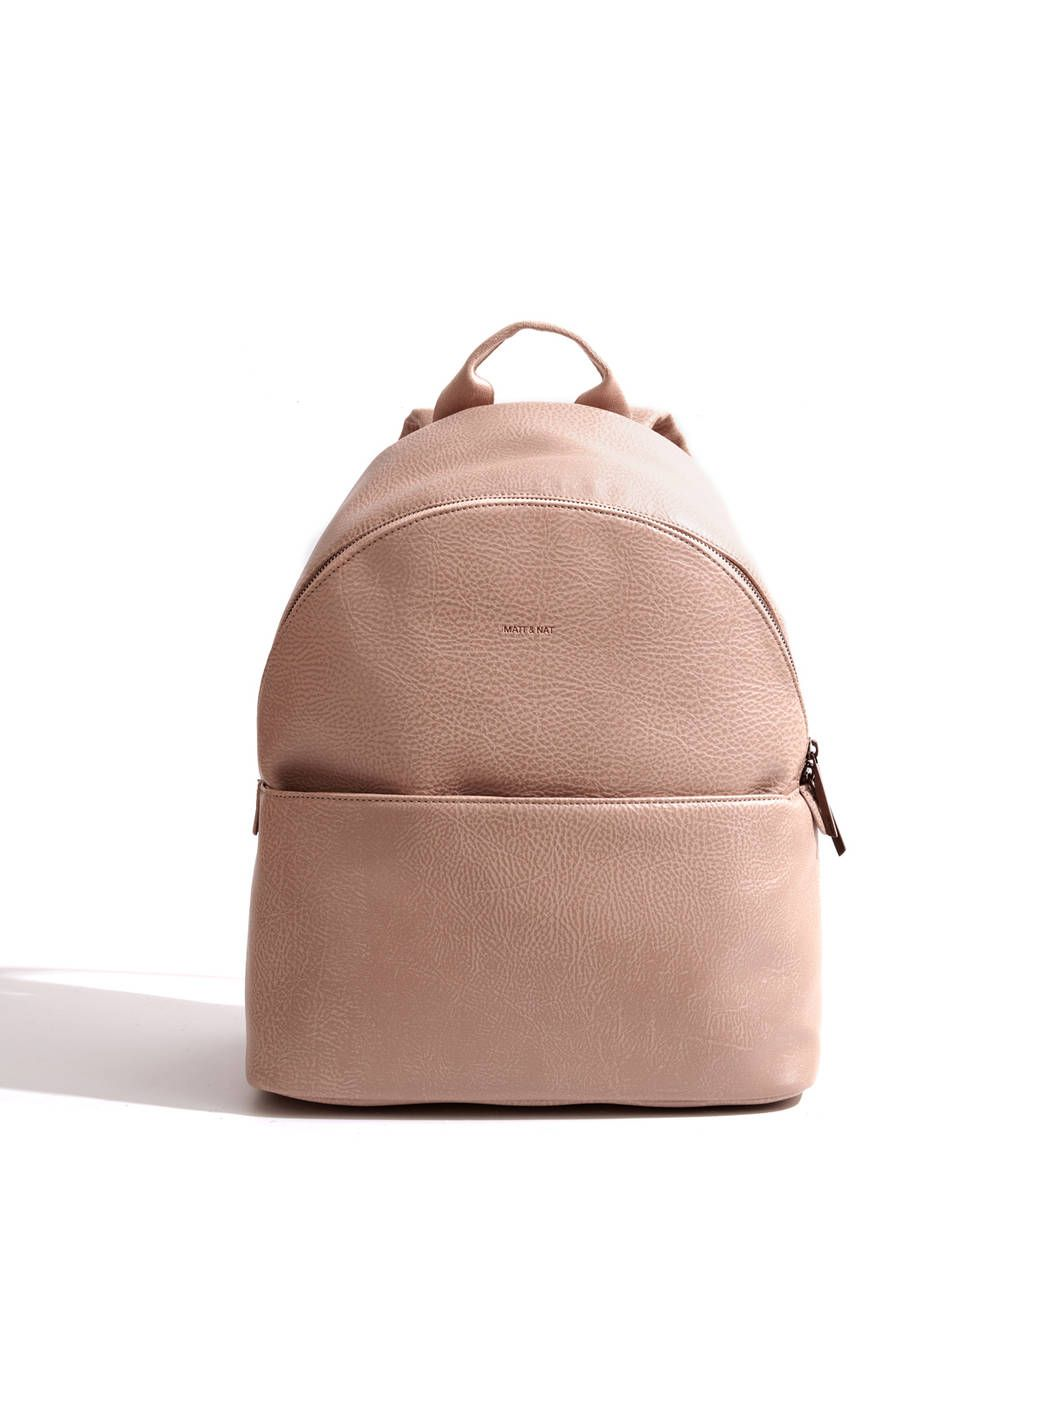 Macaroon July Backpack found on Zady - www.zady.com/products/matt-nat-macaroon-july-backpack - via @zadypins #zady #style #fashion #matt&nat